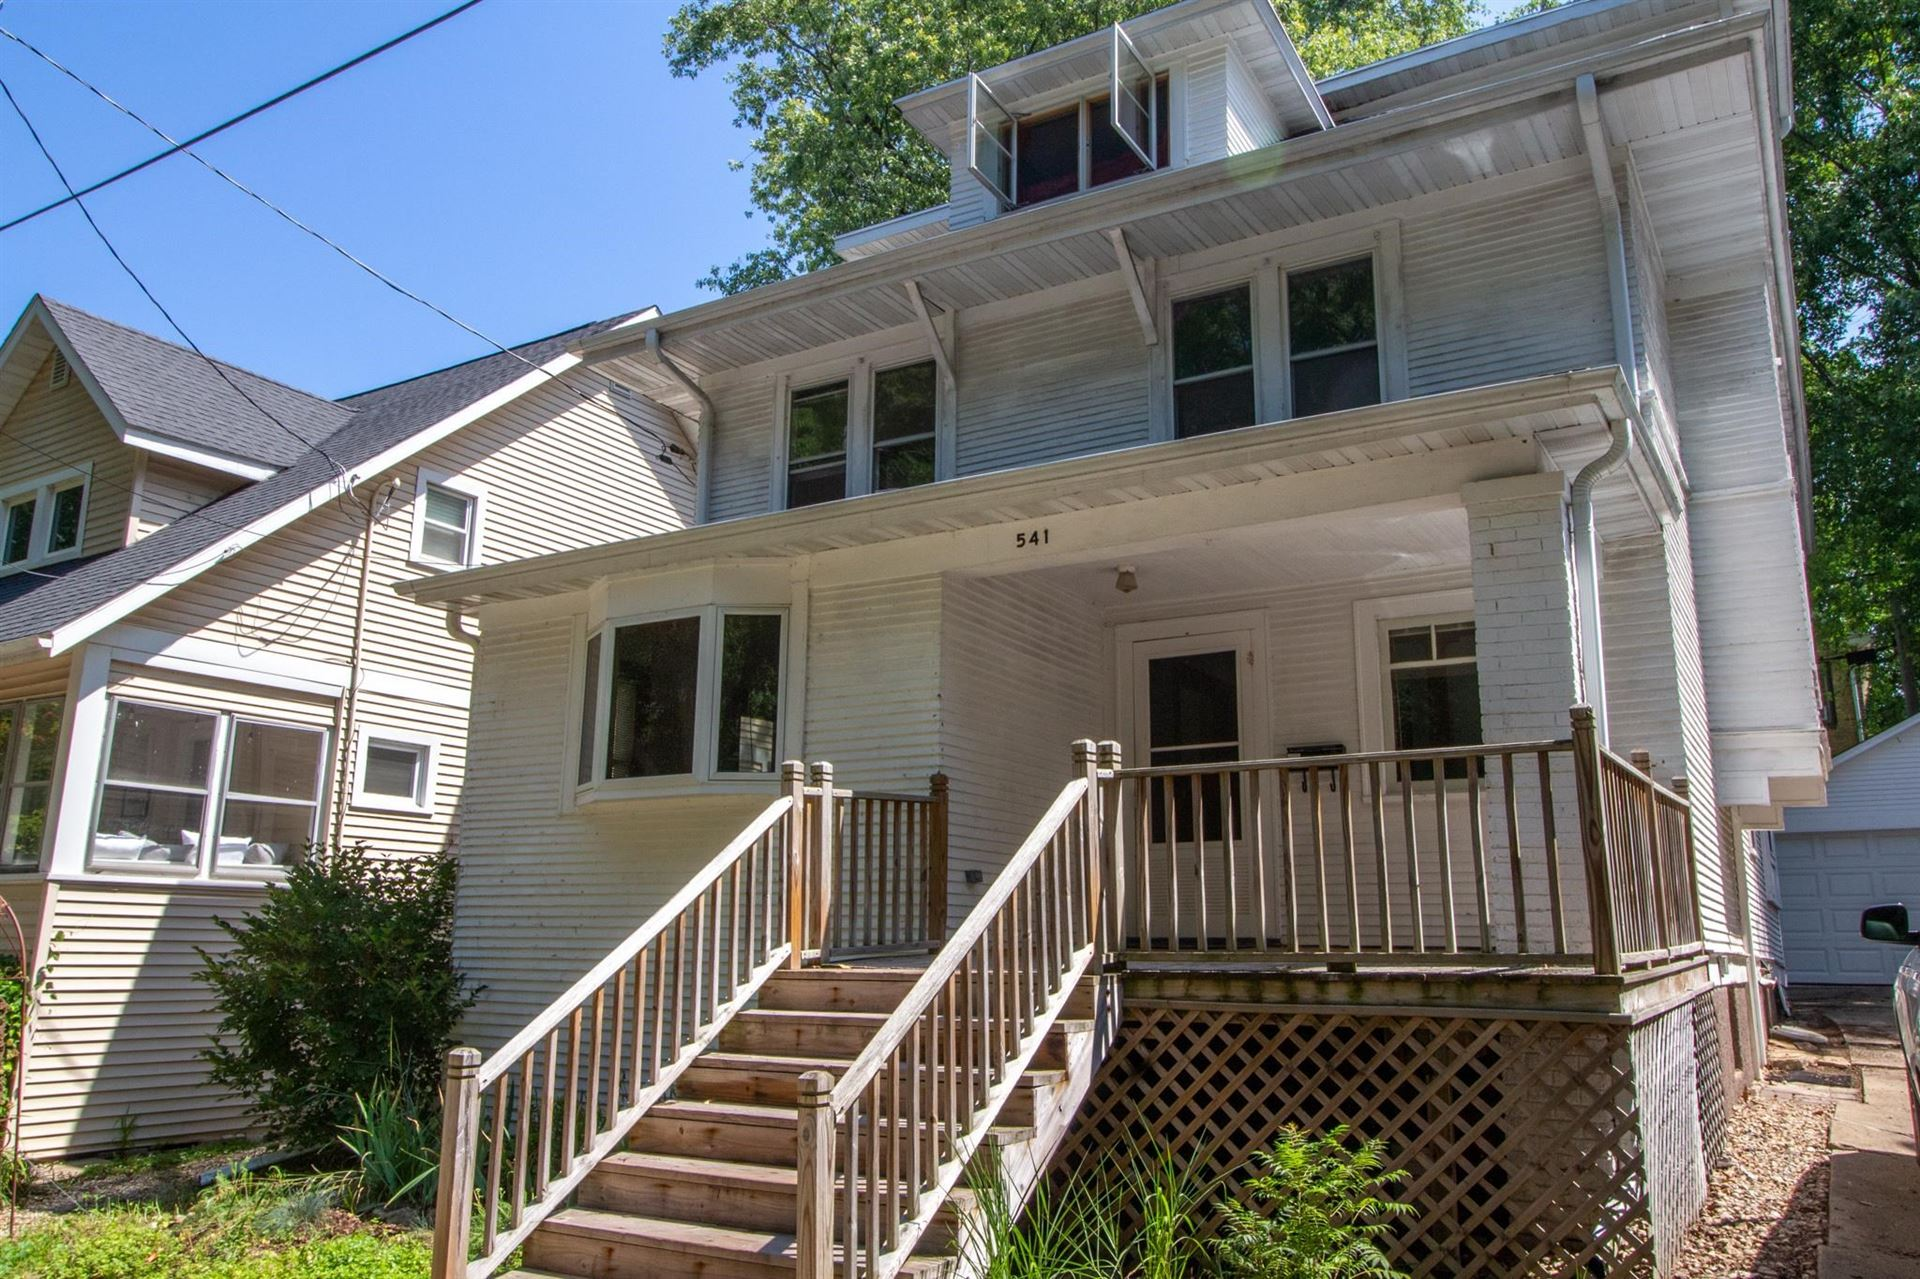 541 S Randall Ave, Madison, WI 53715 - #: 1917903